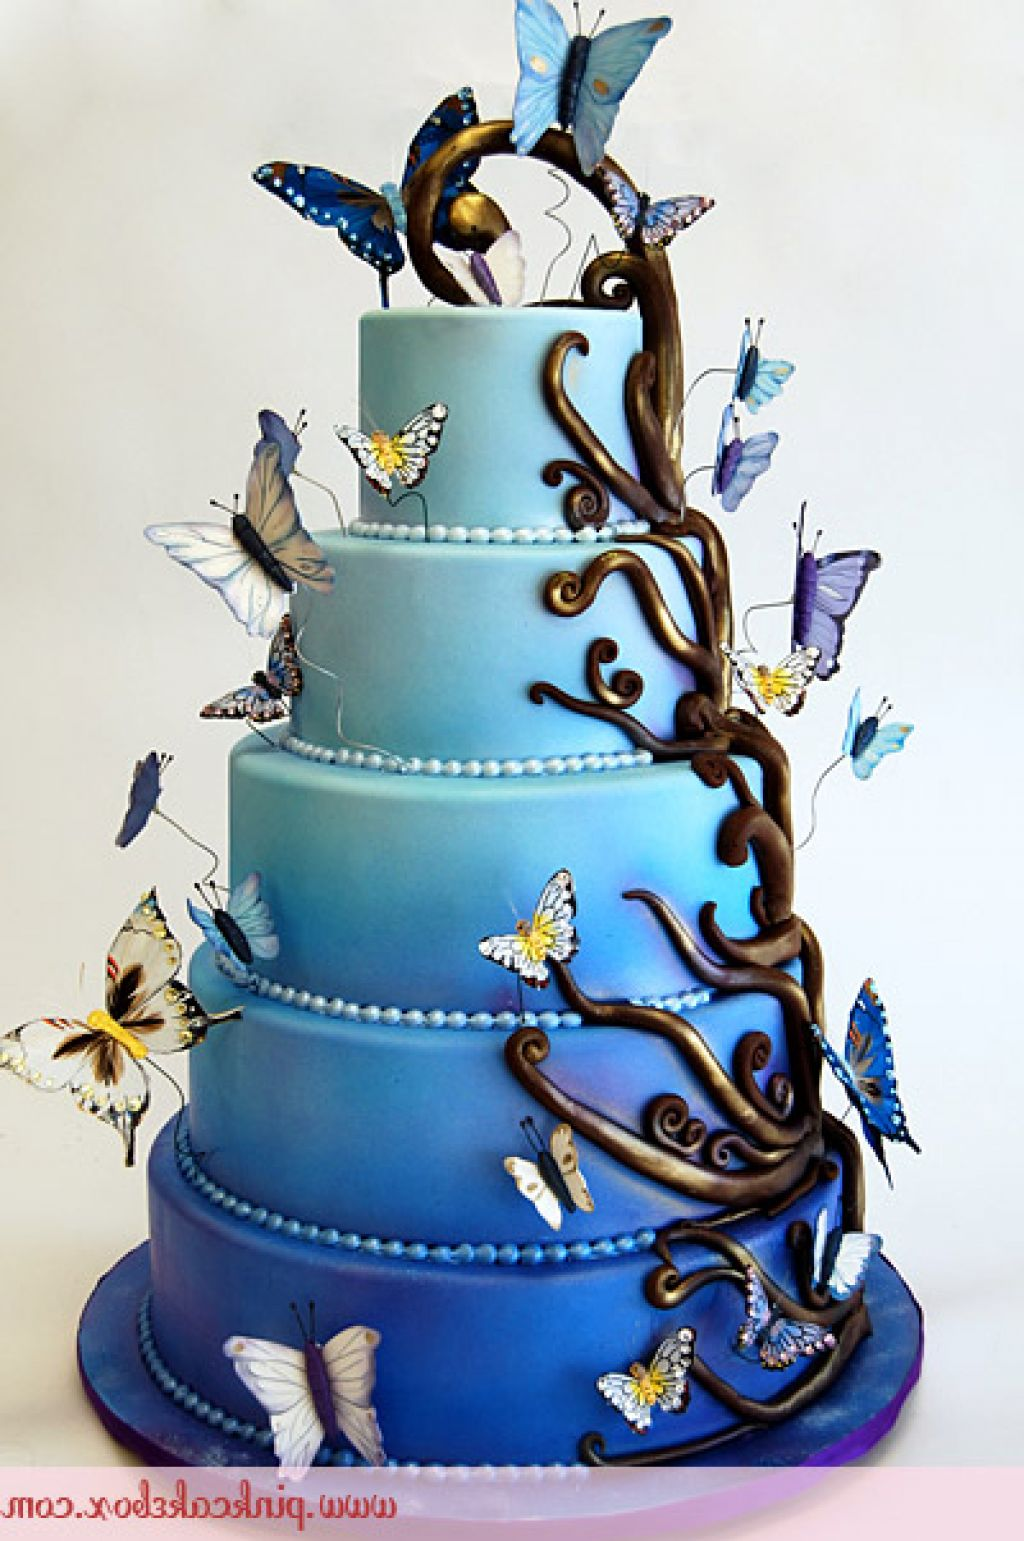 20 Super Amazing and Fantastic Cakes Page 20 of 20